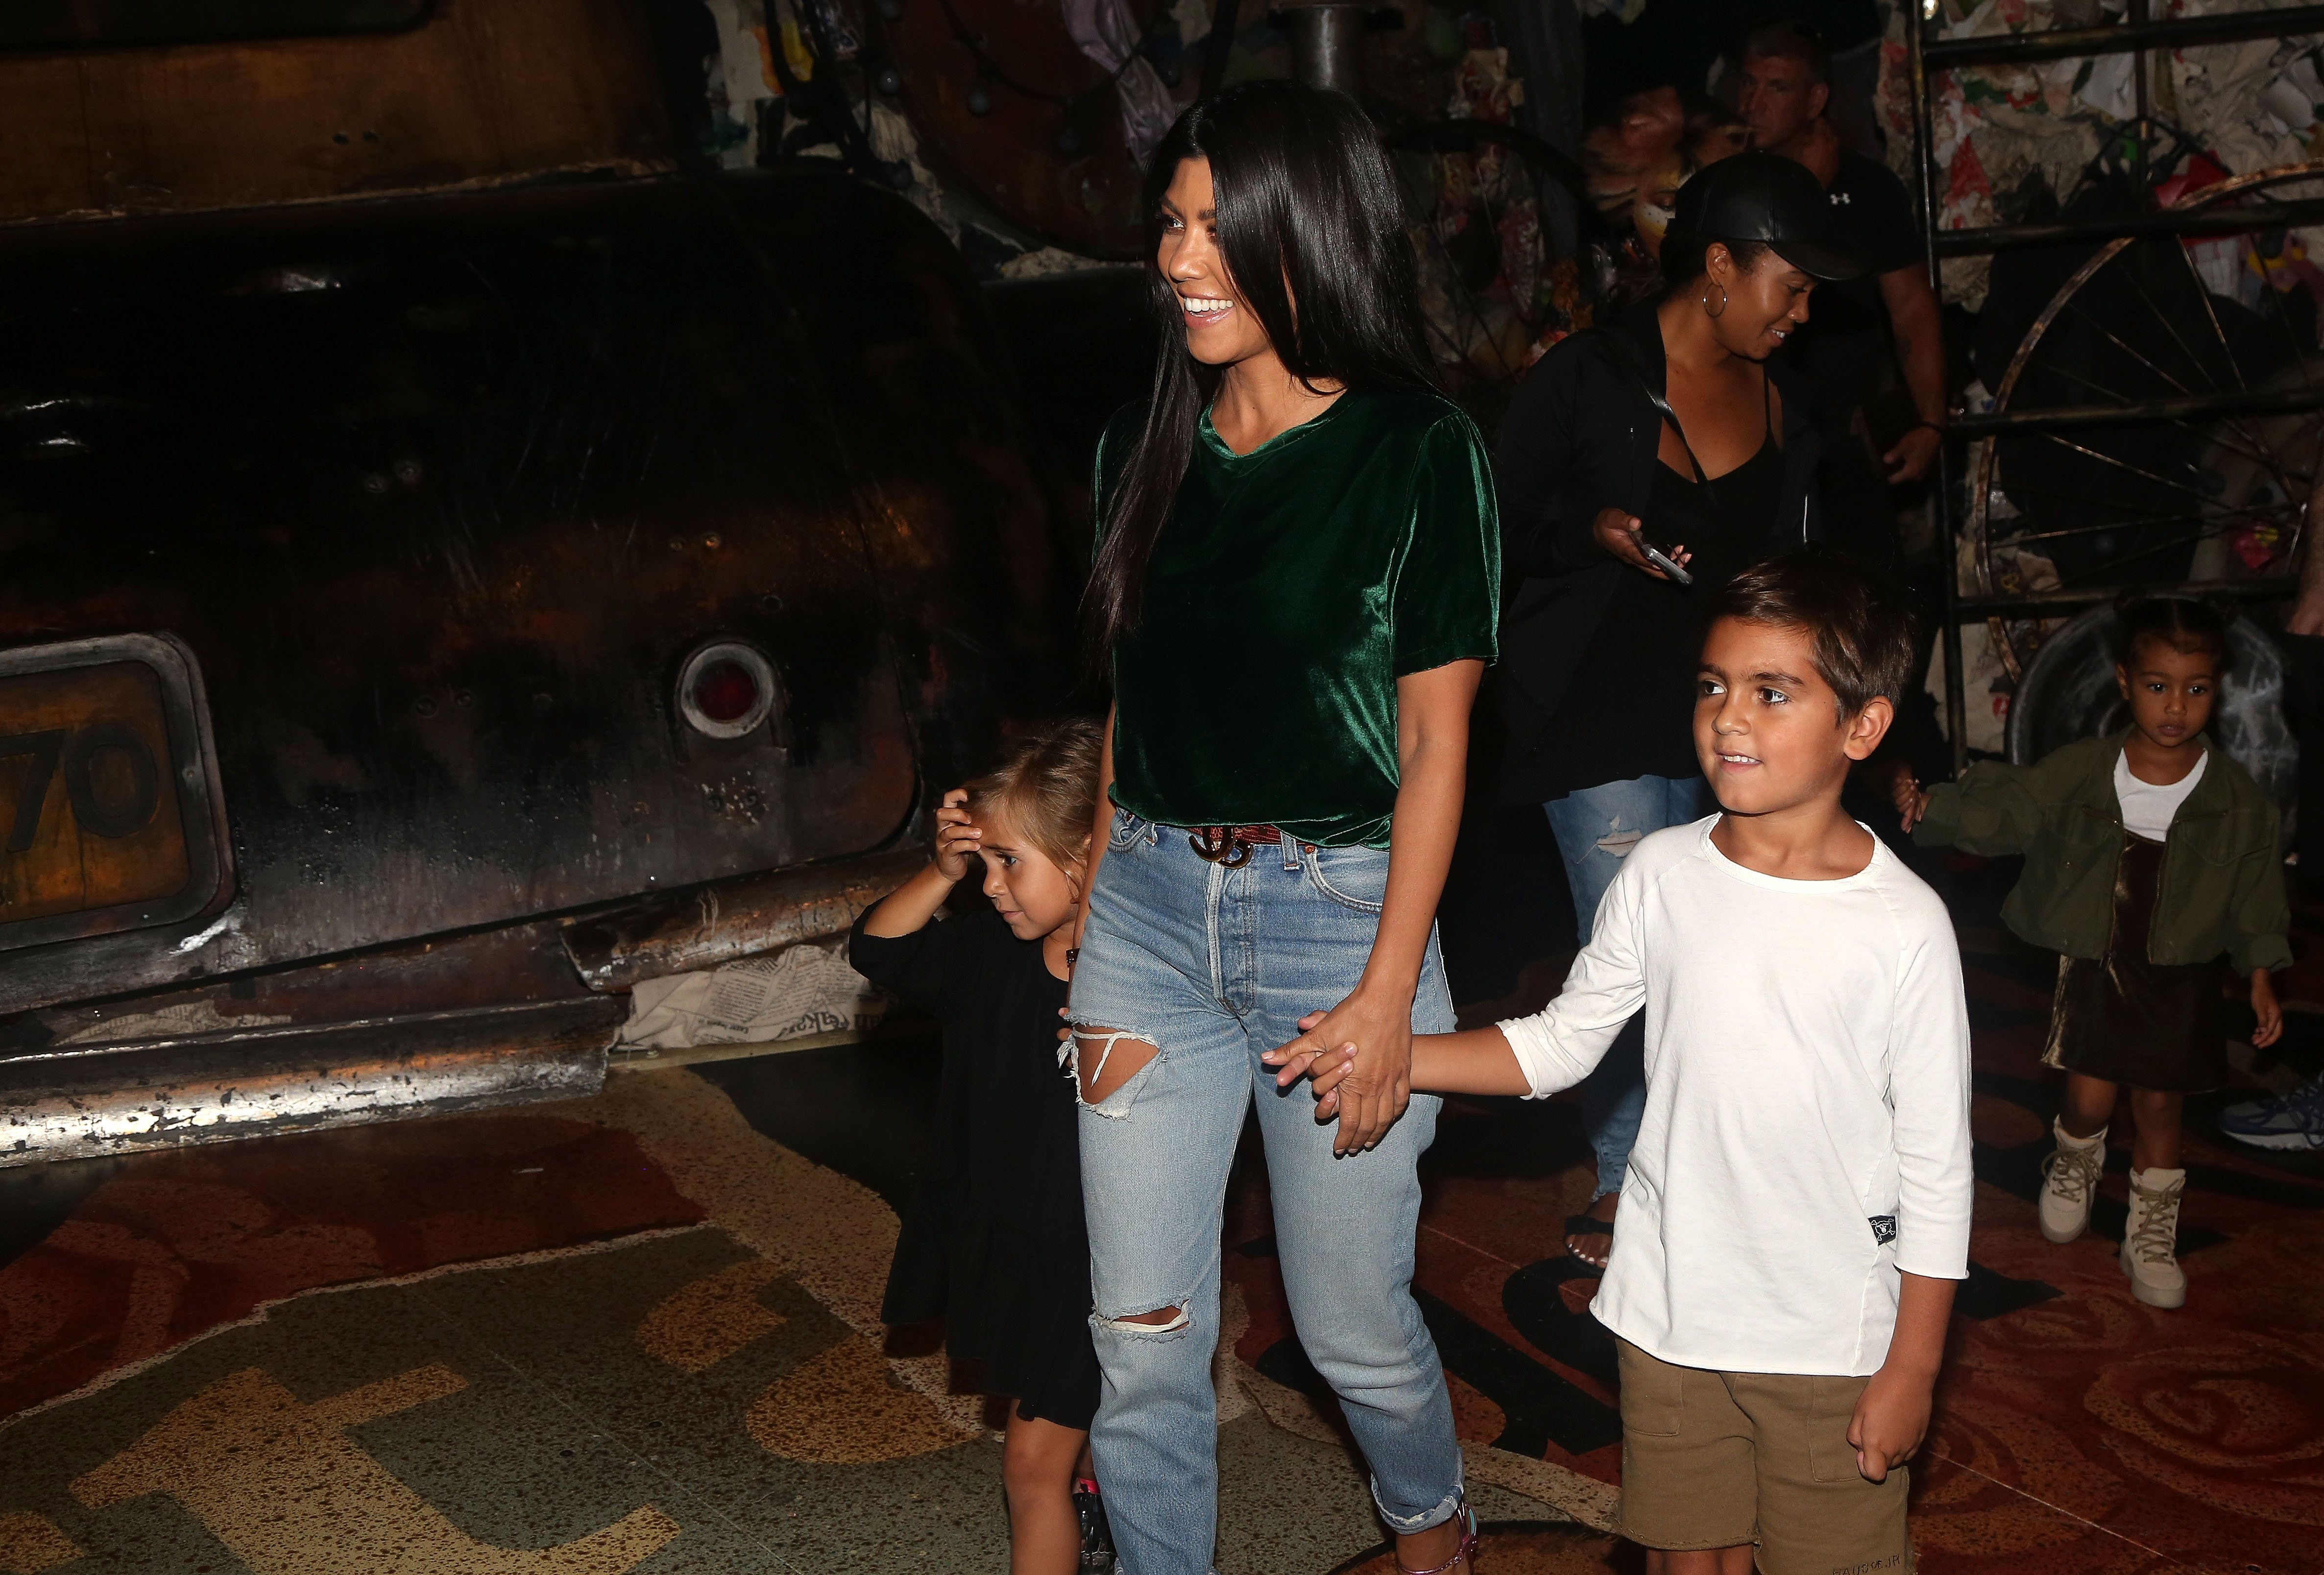 """Kourtney Kardashian, Mason Disick, Penelope Disick and North West backstage at """"Cats"""" on Broadway at The Neil Simon Theatre on September 11, 2016, in New York City. 